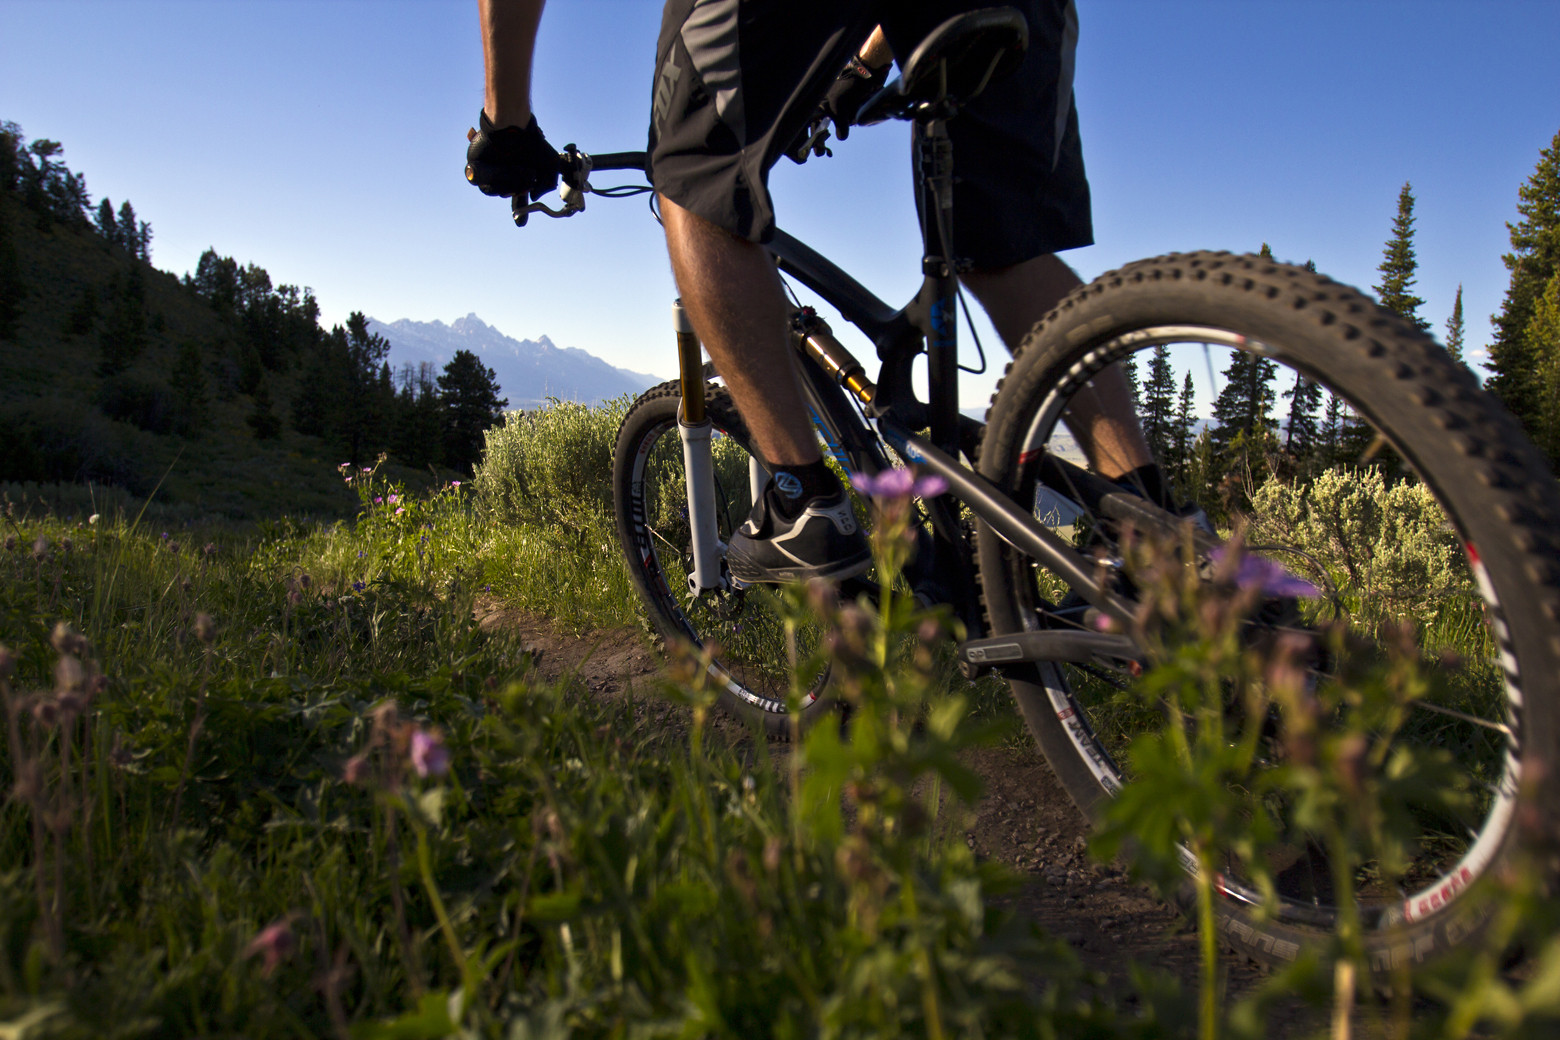 Teton Backdrop + Glorious Descent - jacksonholemountainresort - Mountain Biking Pictures - Vital MTB